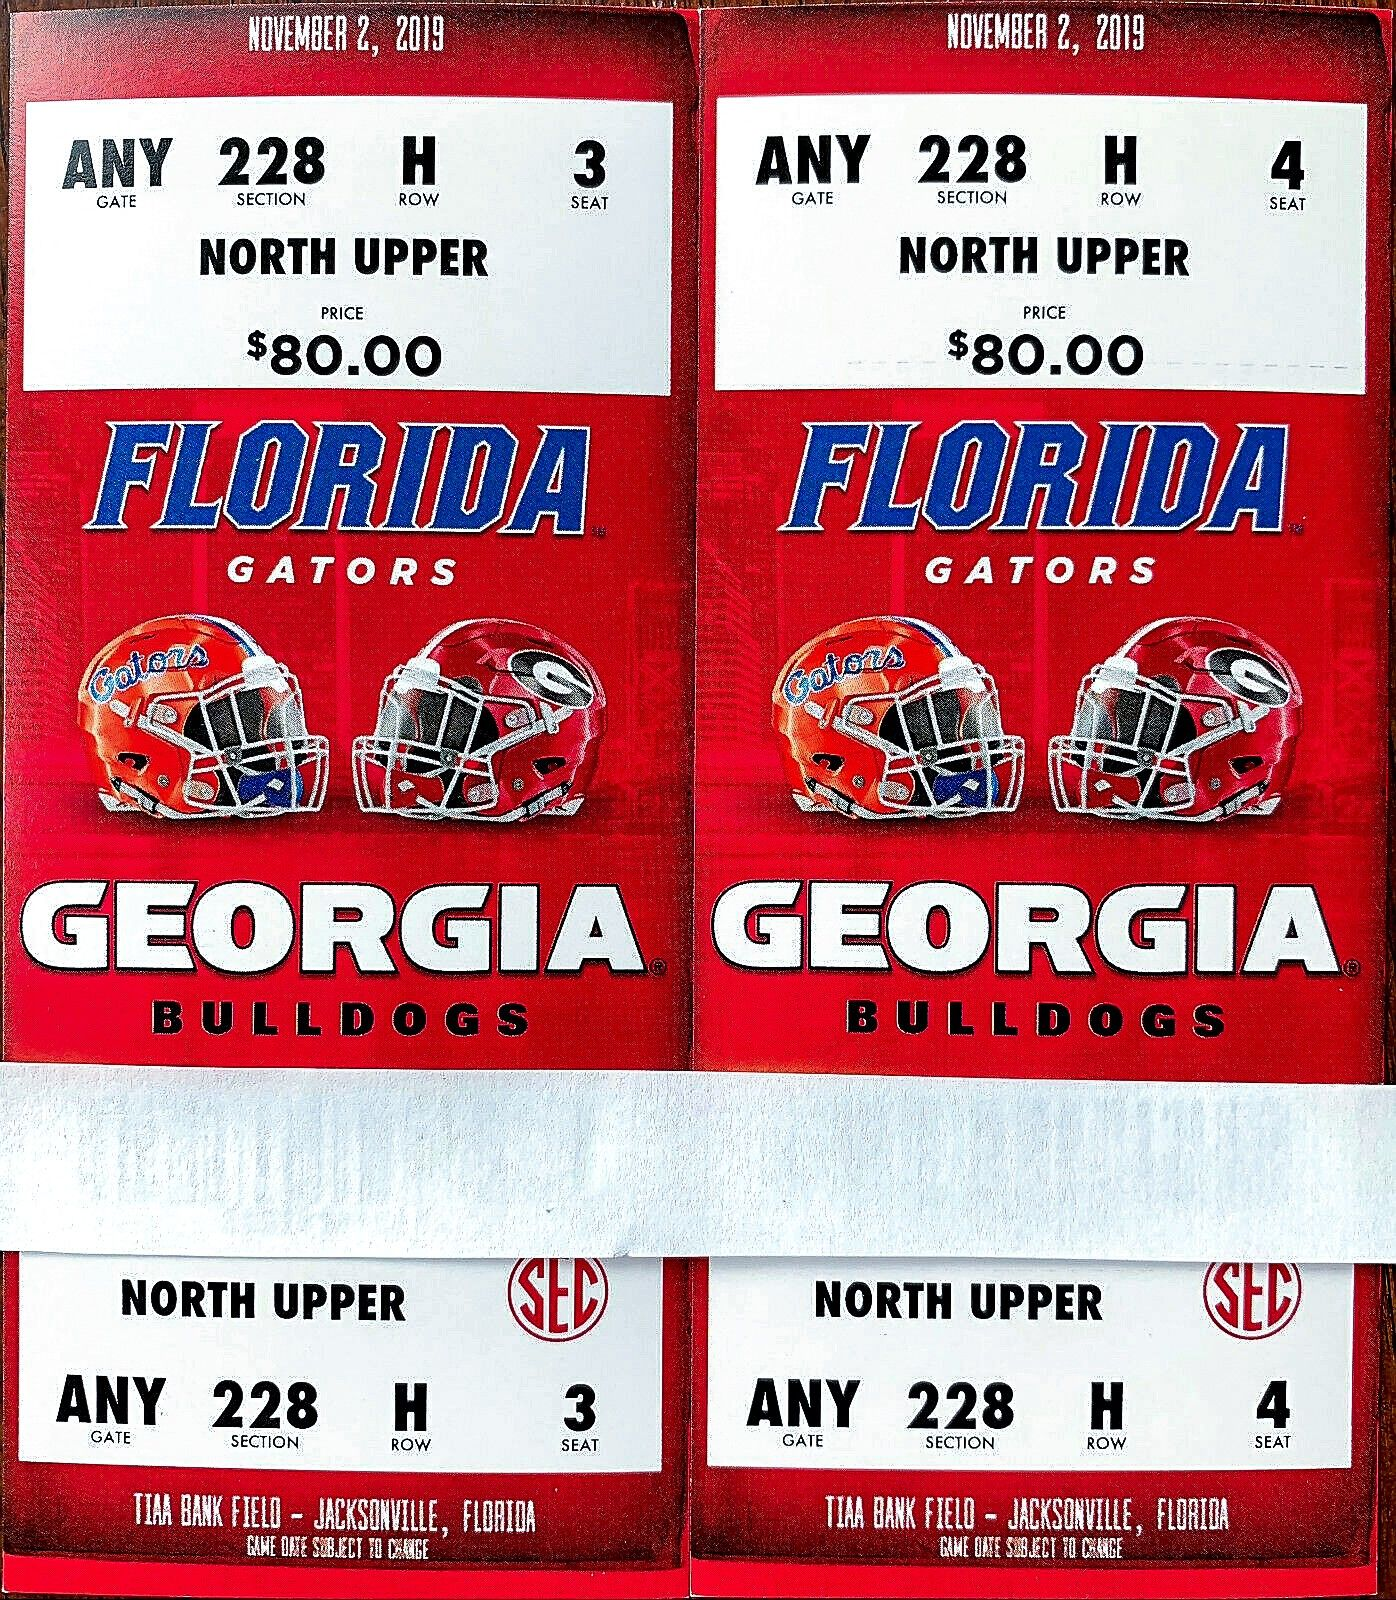 Vs. Florida (November 2, 2019) Tickets For Sale